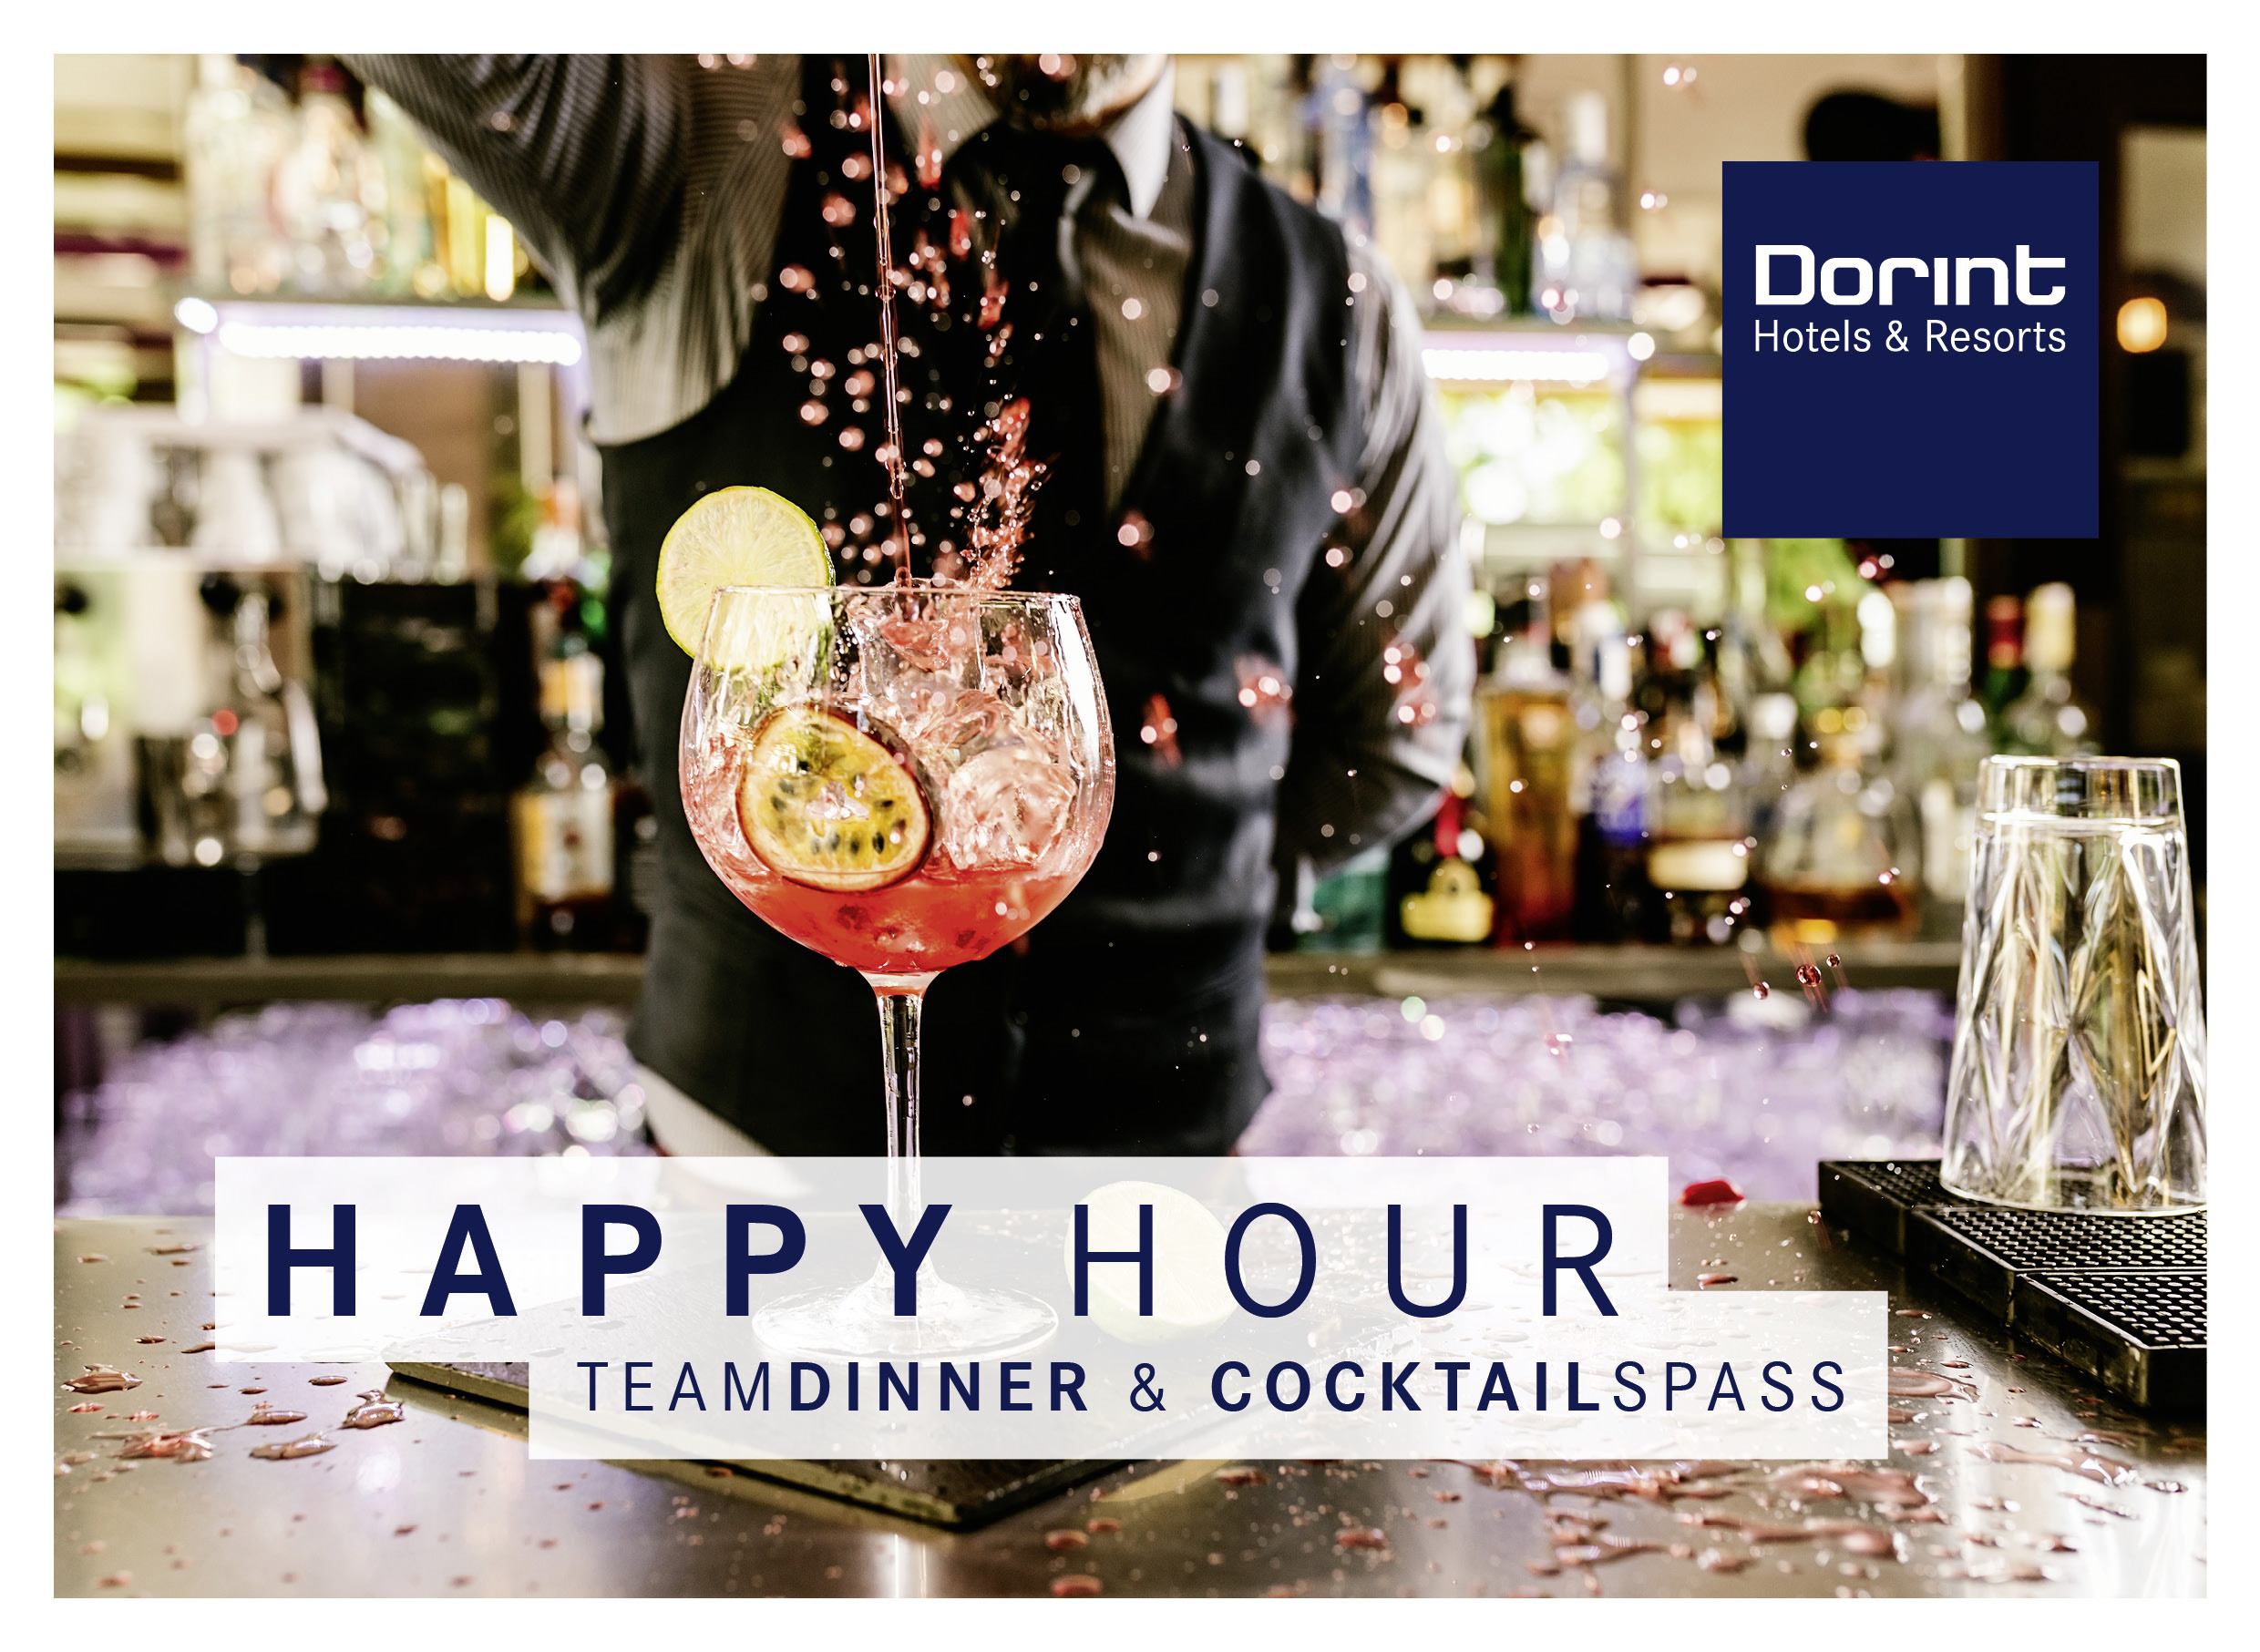 Special: Happy Hour bei den Dorint Hotels & Resorts